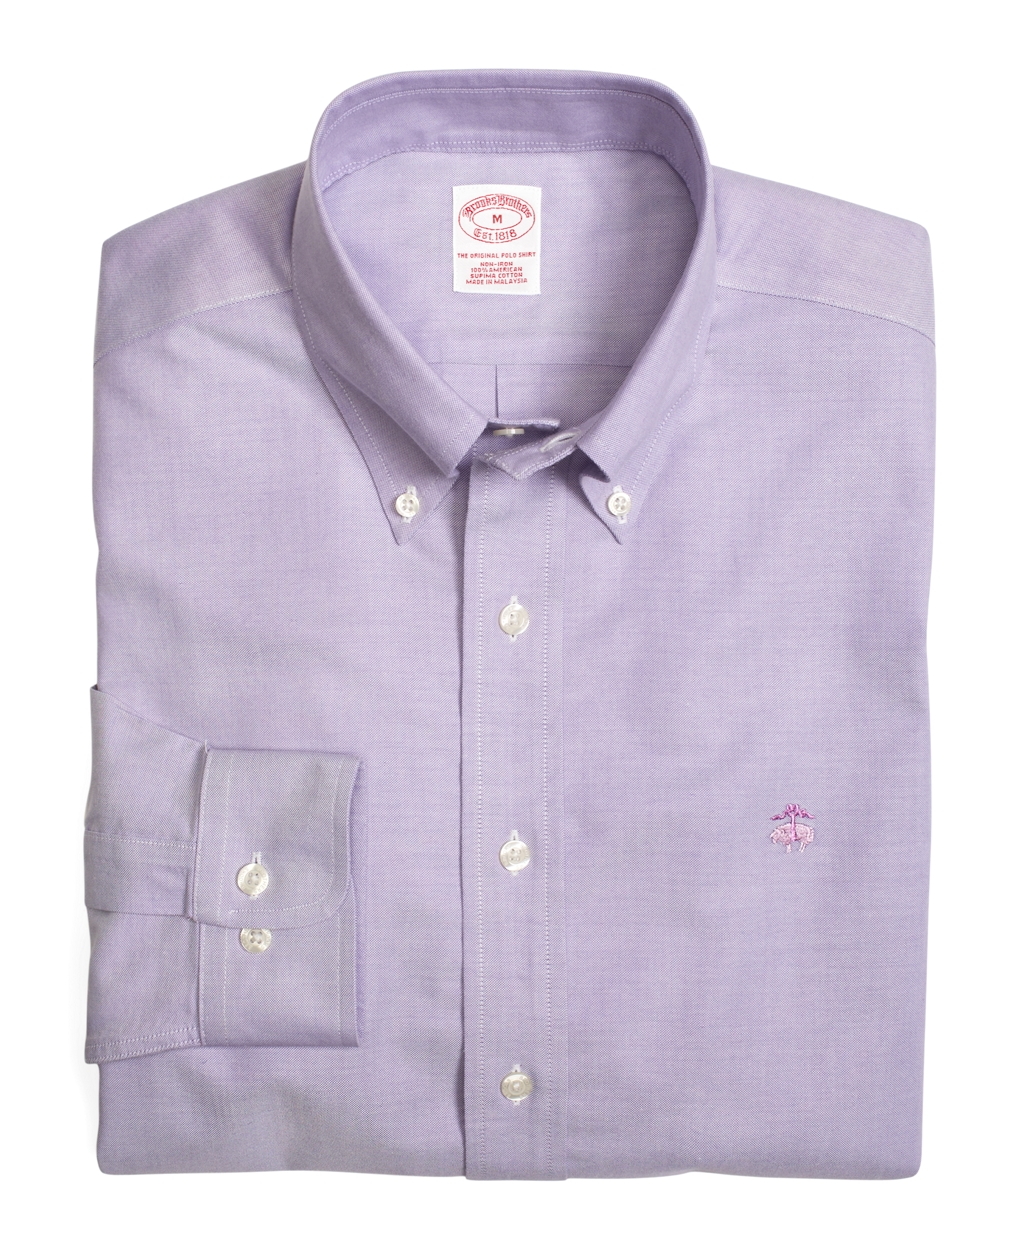 Brooks brothers supima cotton noniron slim fit brookscool for Brooks brothers dress shirt fit guide